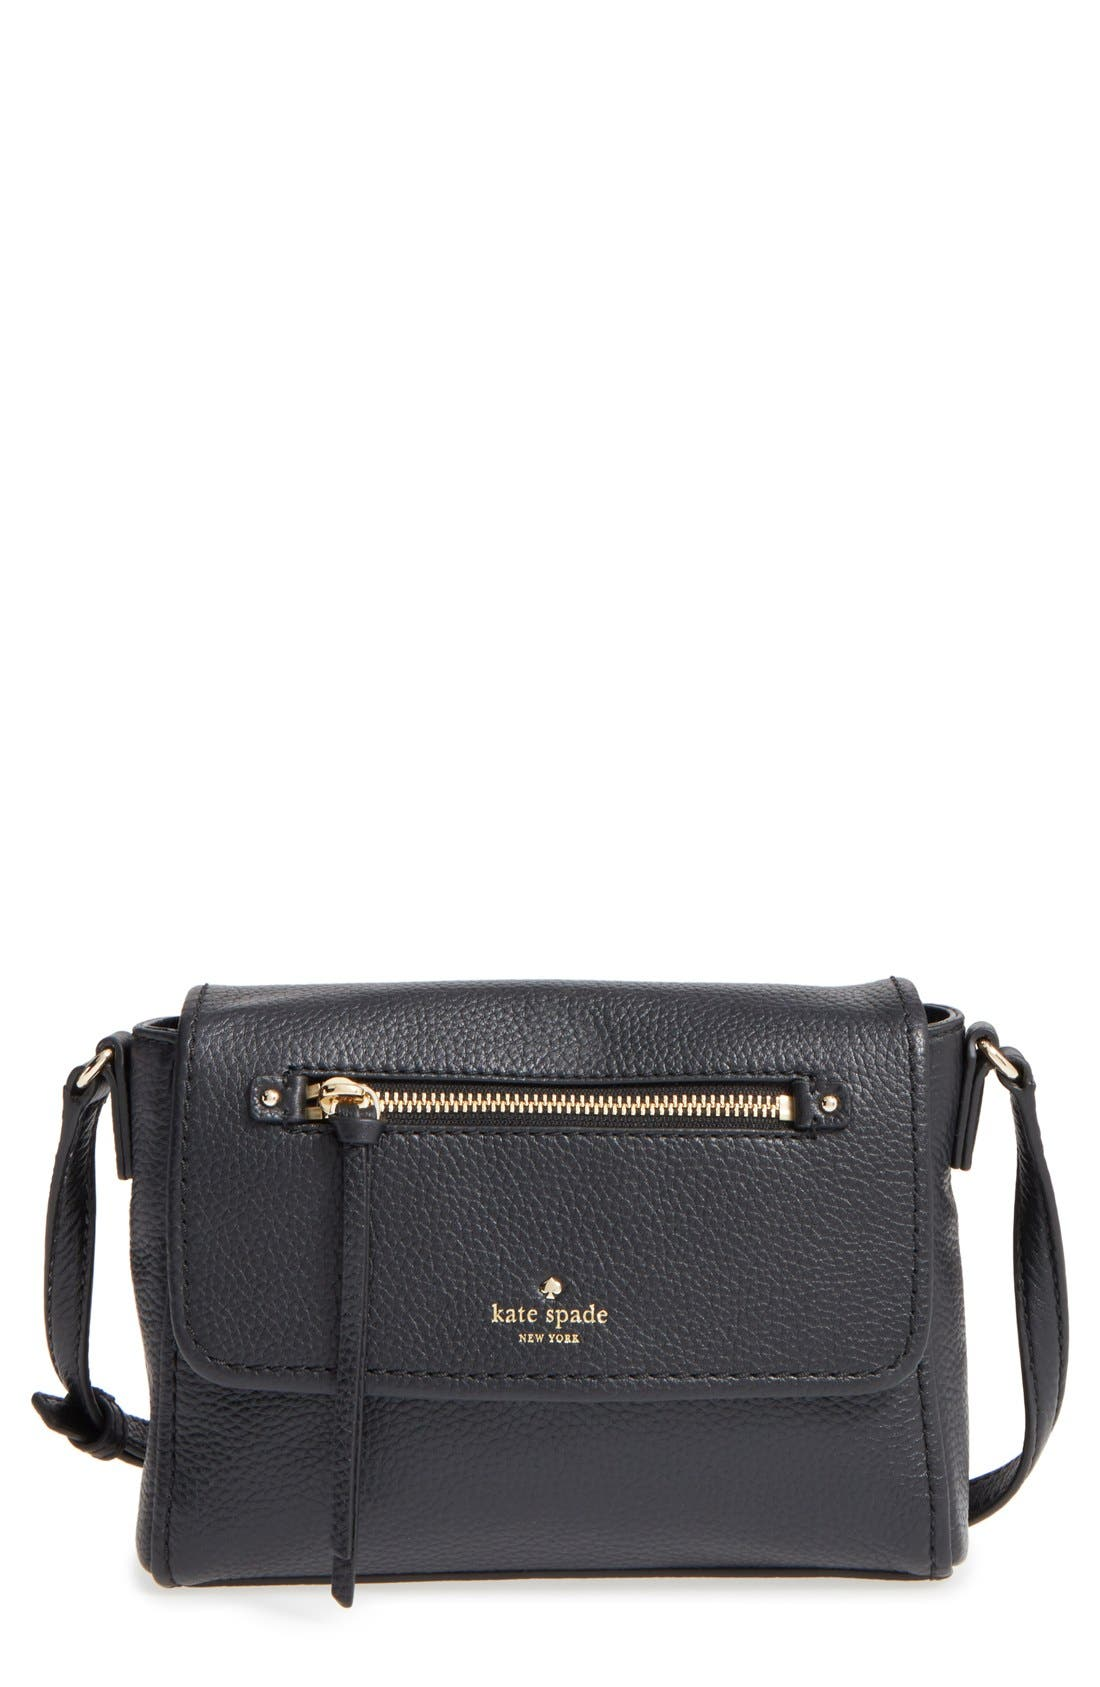 Main Image - kate spade new york 'cobble hill - mini toddy' leather crossbody bag